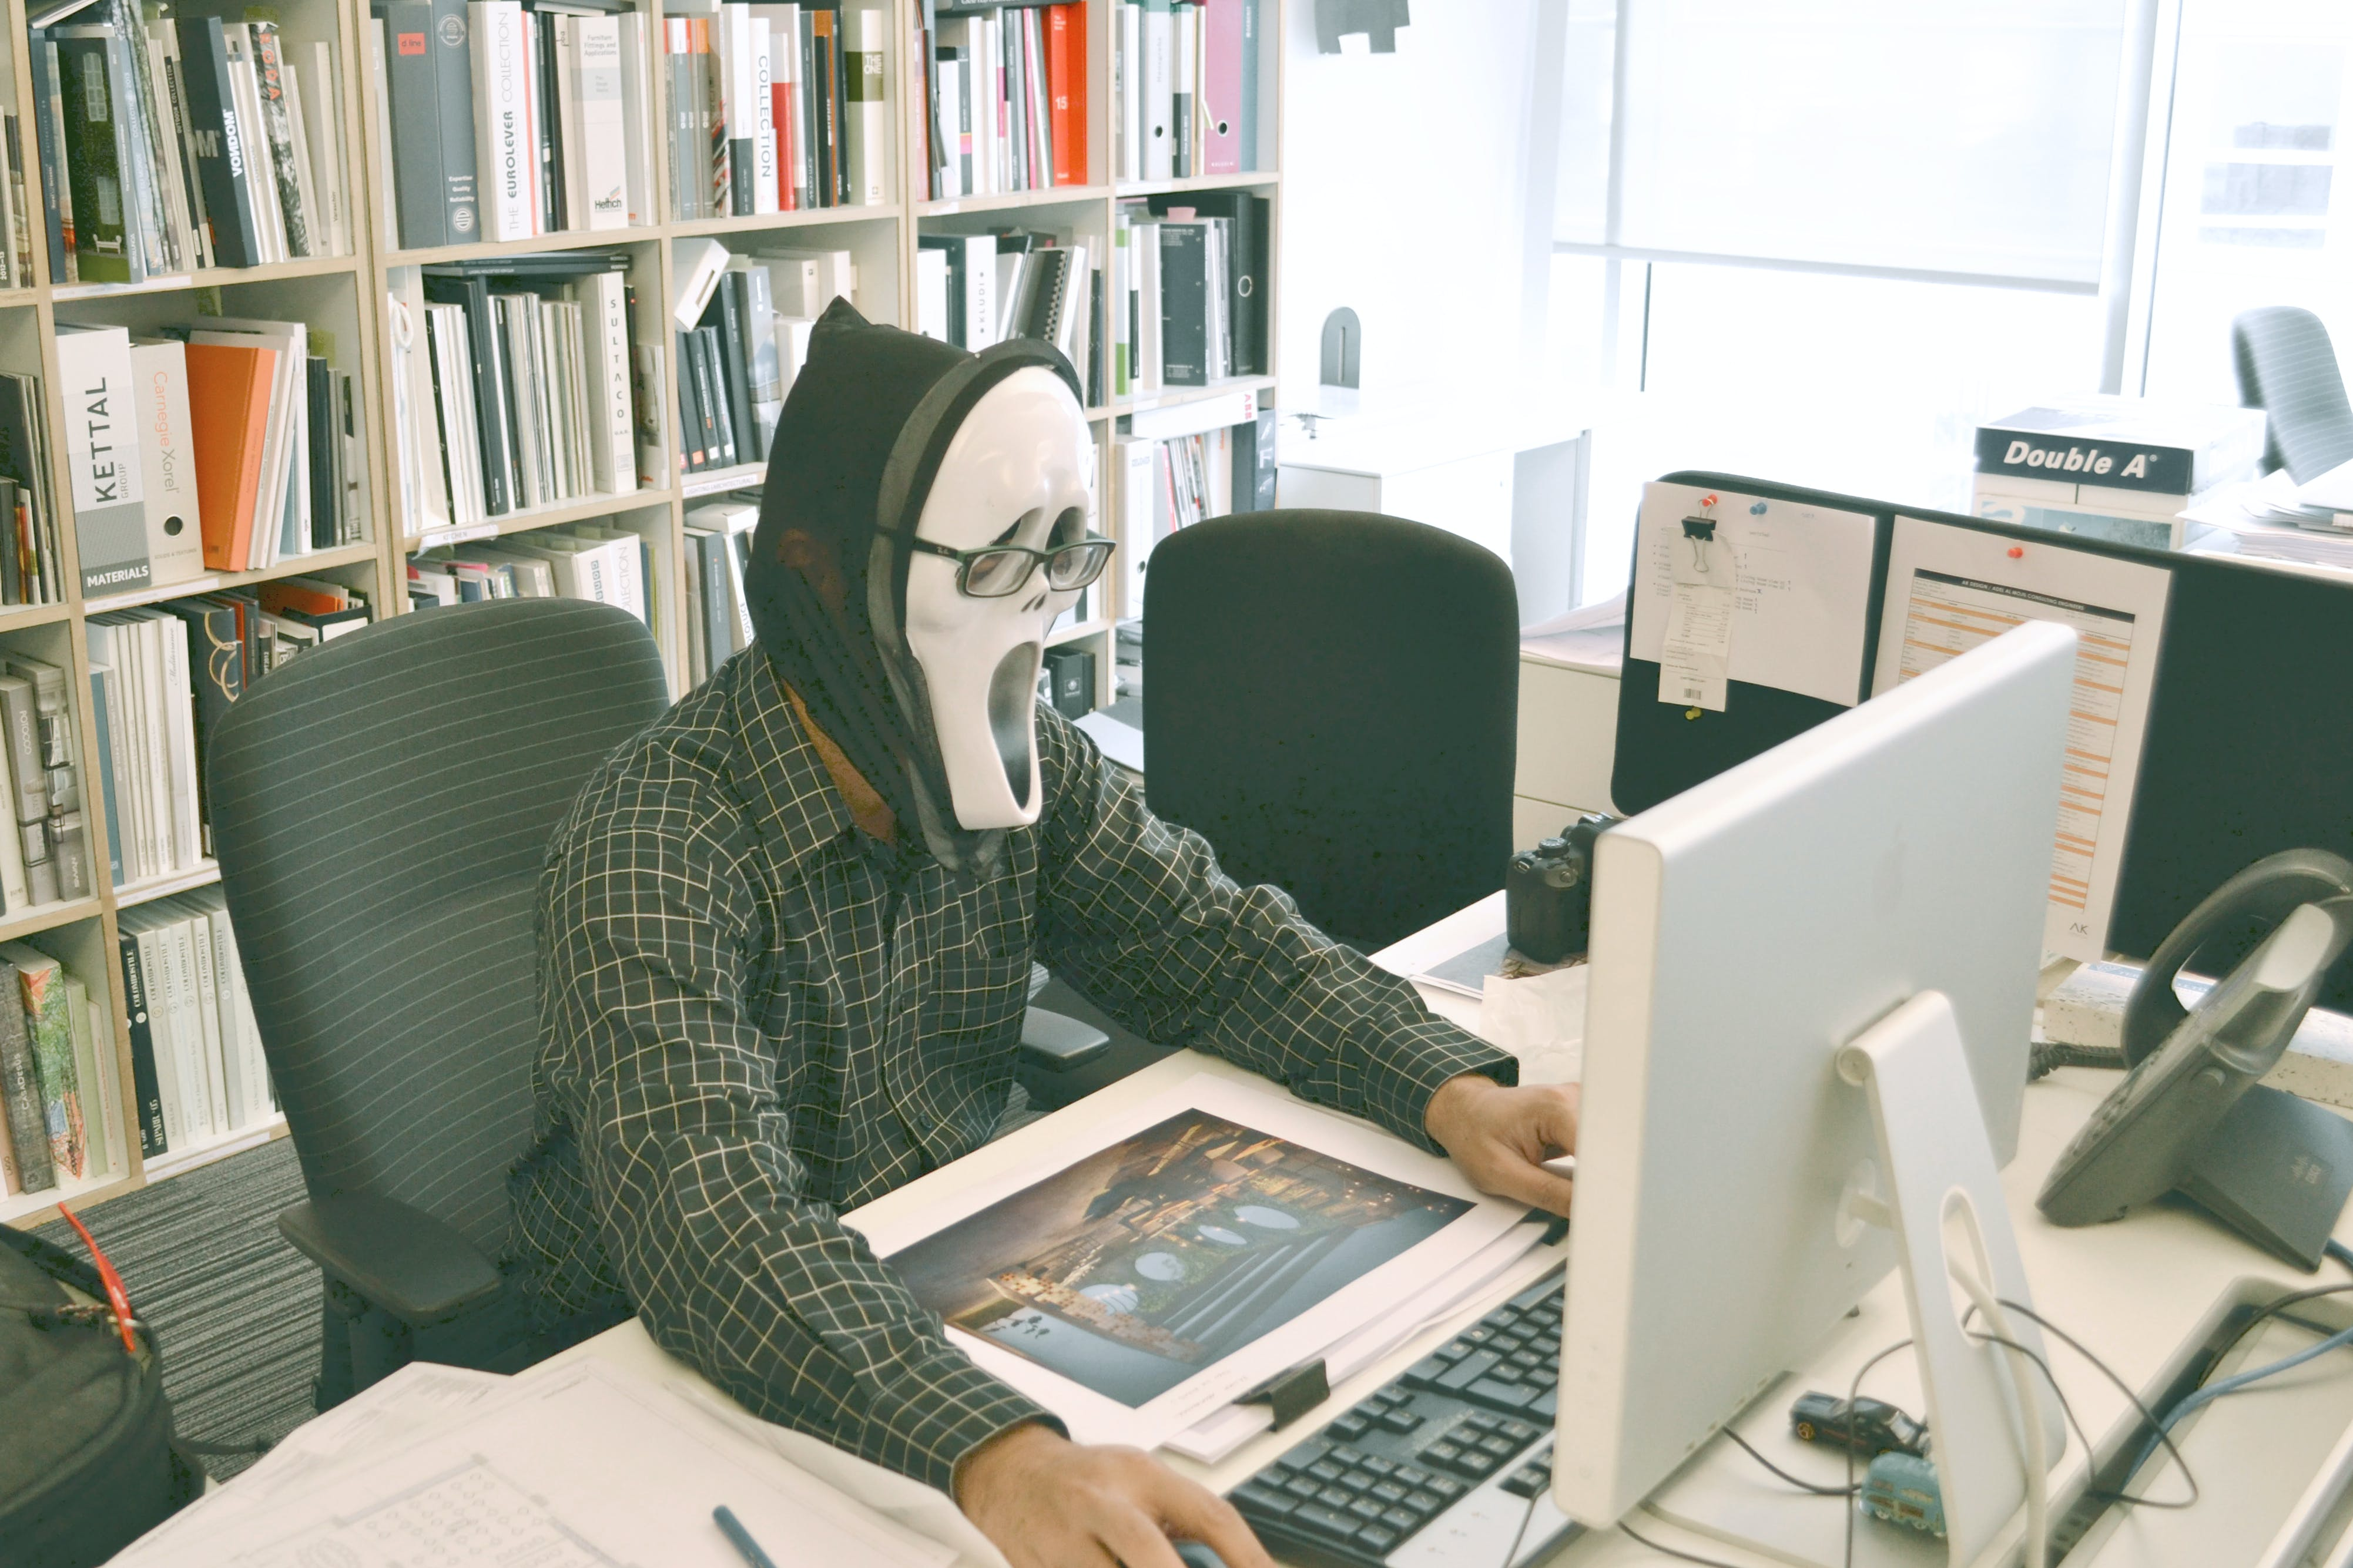 Person Wearing Scream Mask and Black Dress Shirt While Facing Computer Table during Daytime